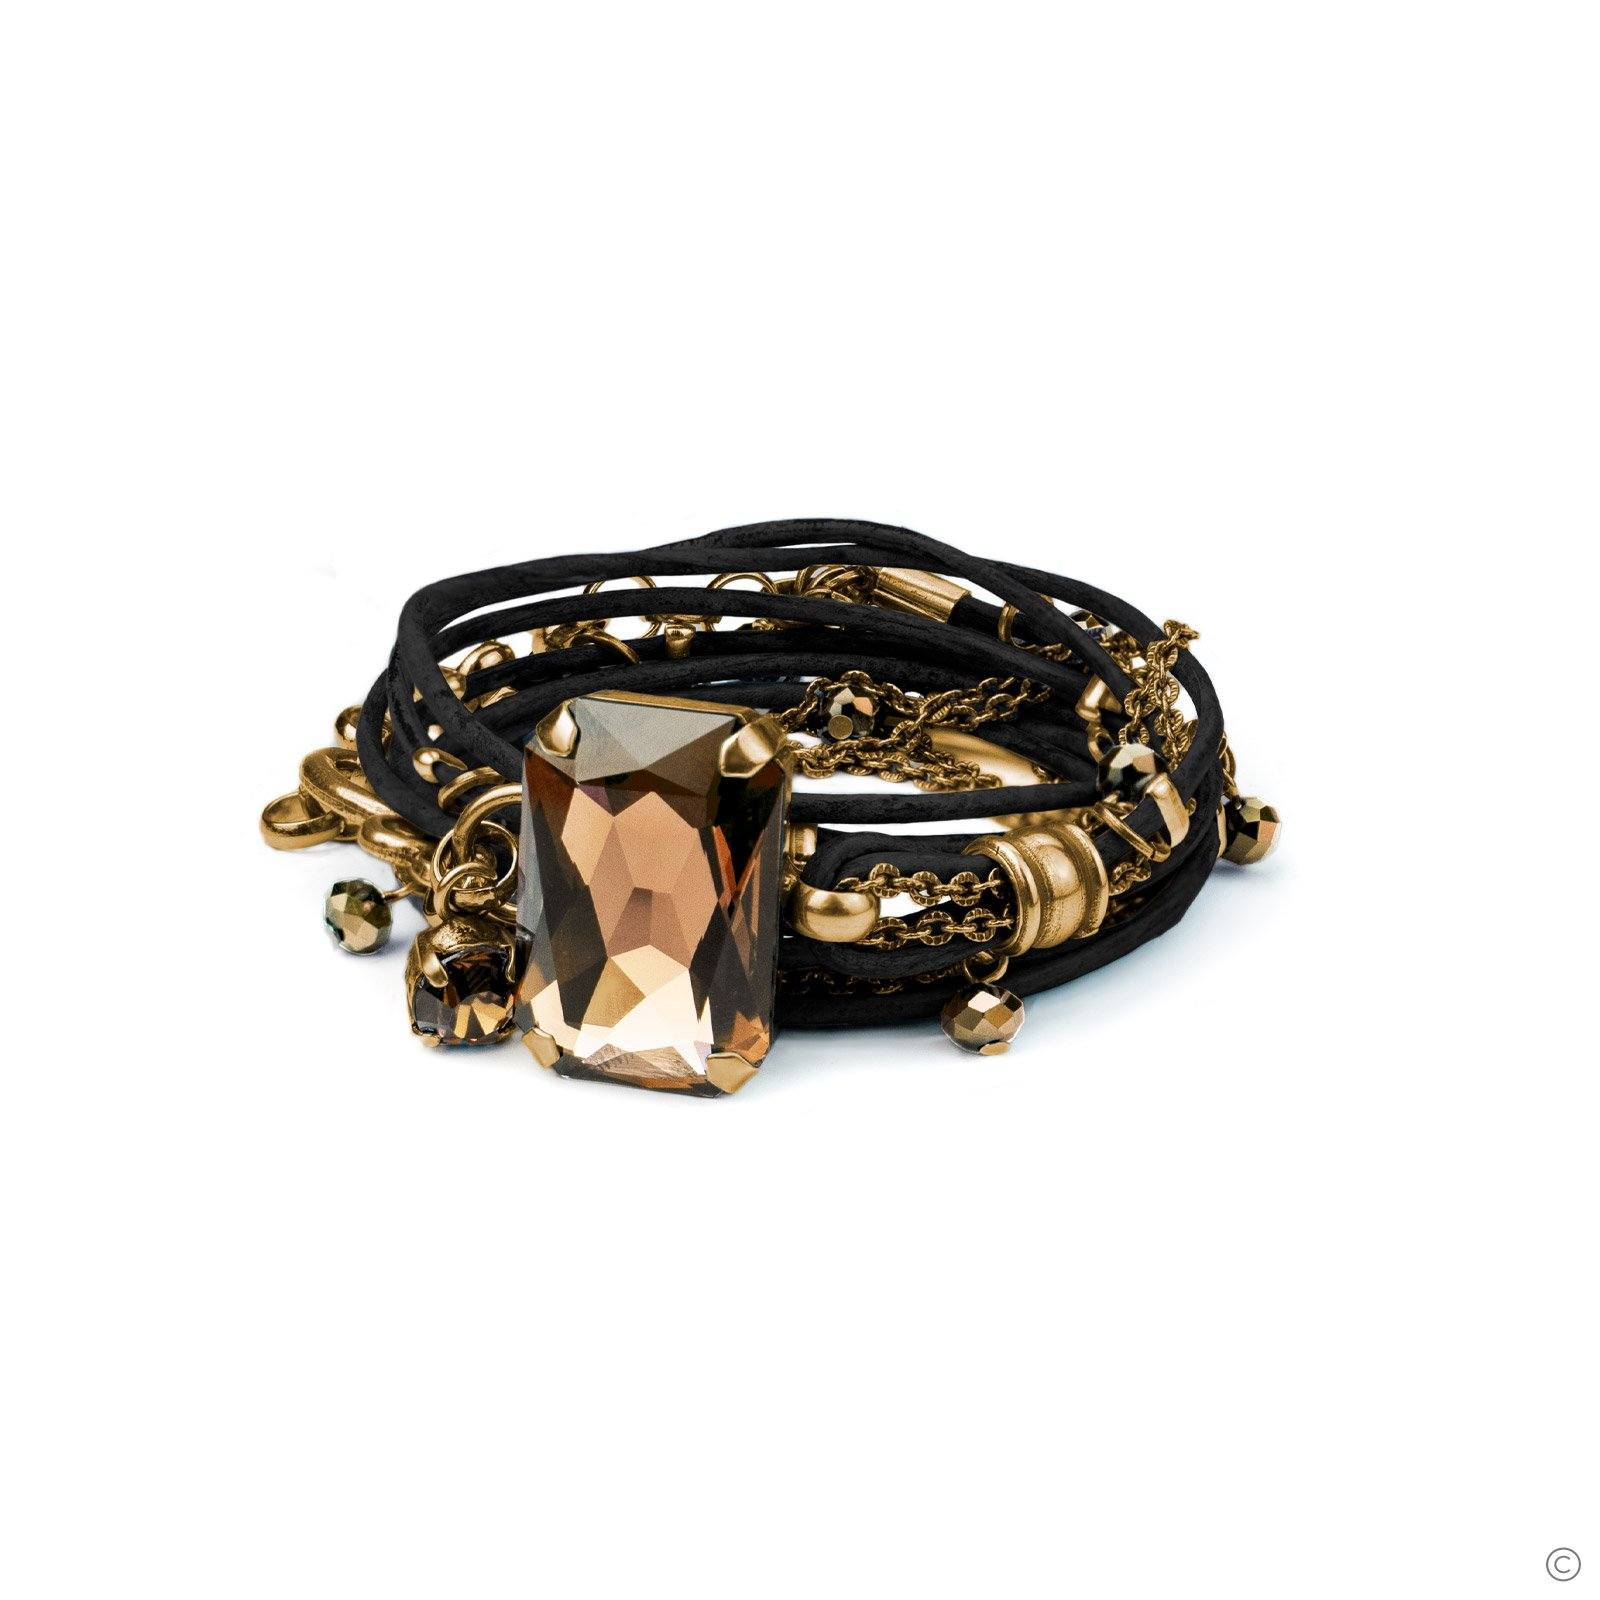 Stardust Leather Bracelet - Black & Gold